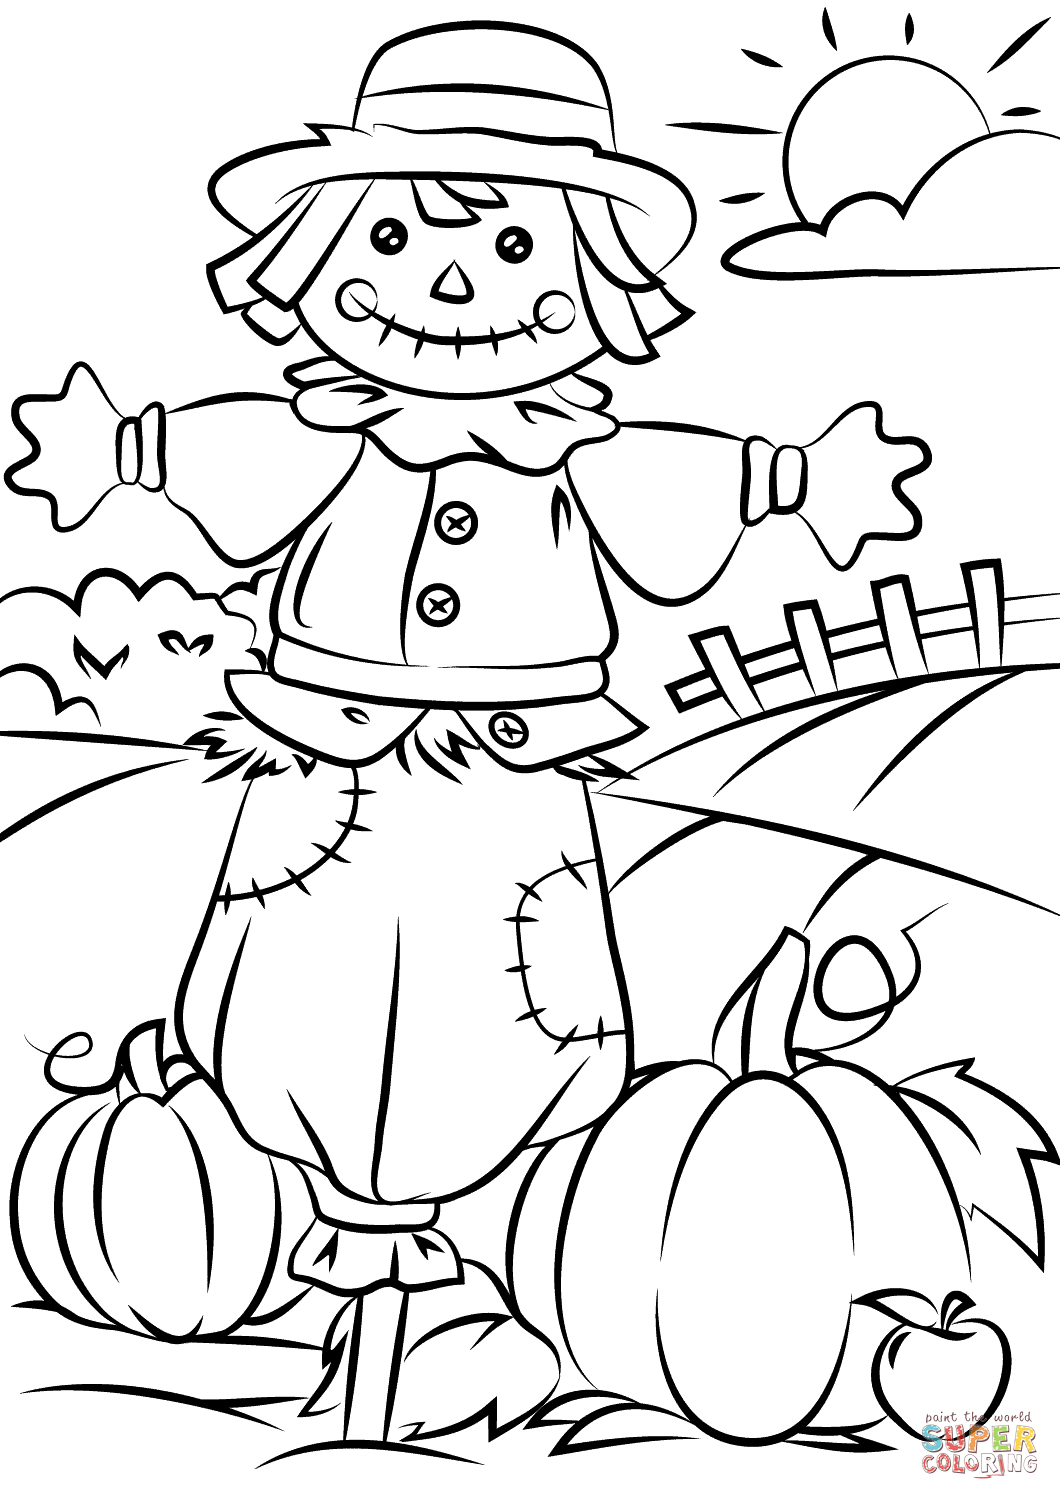 Autumn Scene With Scarecrow Coloring Page | Free Printable Coloring - Free Printable Fall Coloring Pages